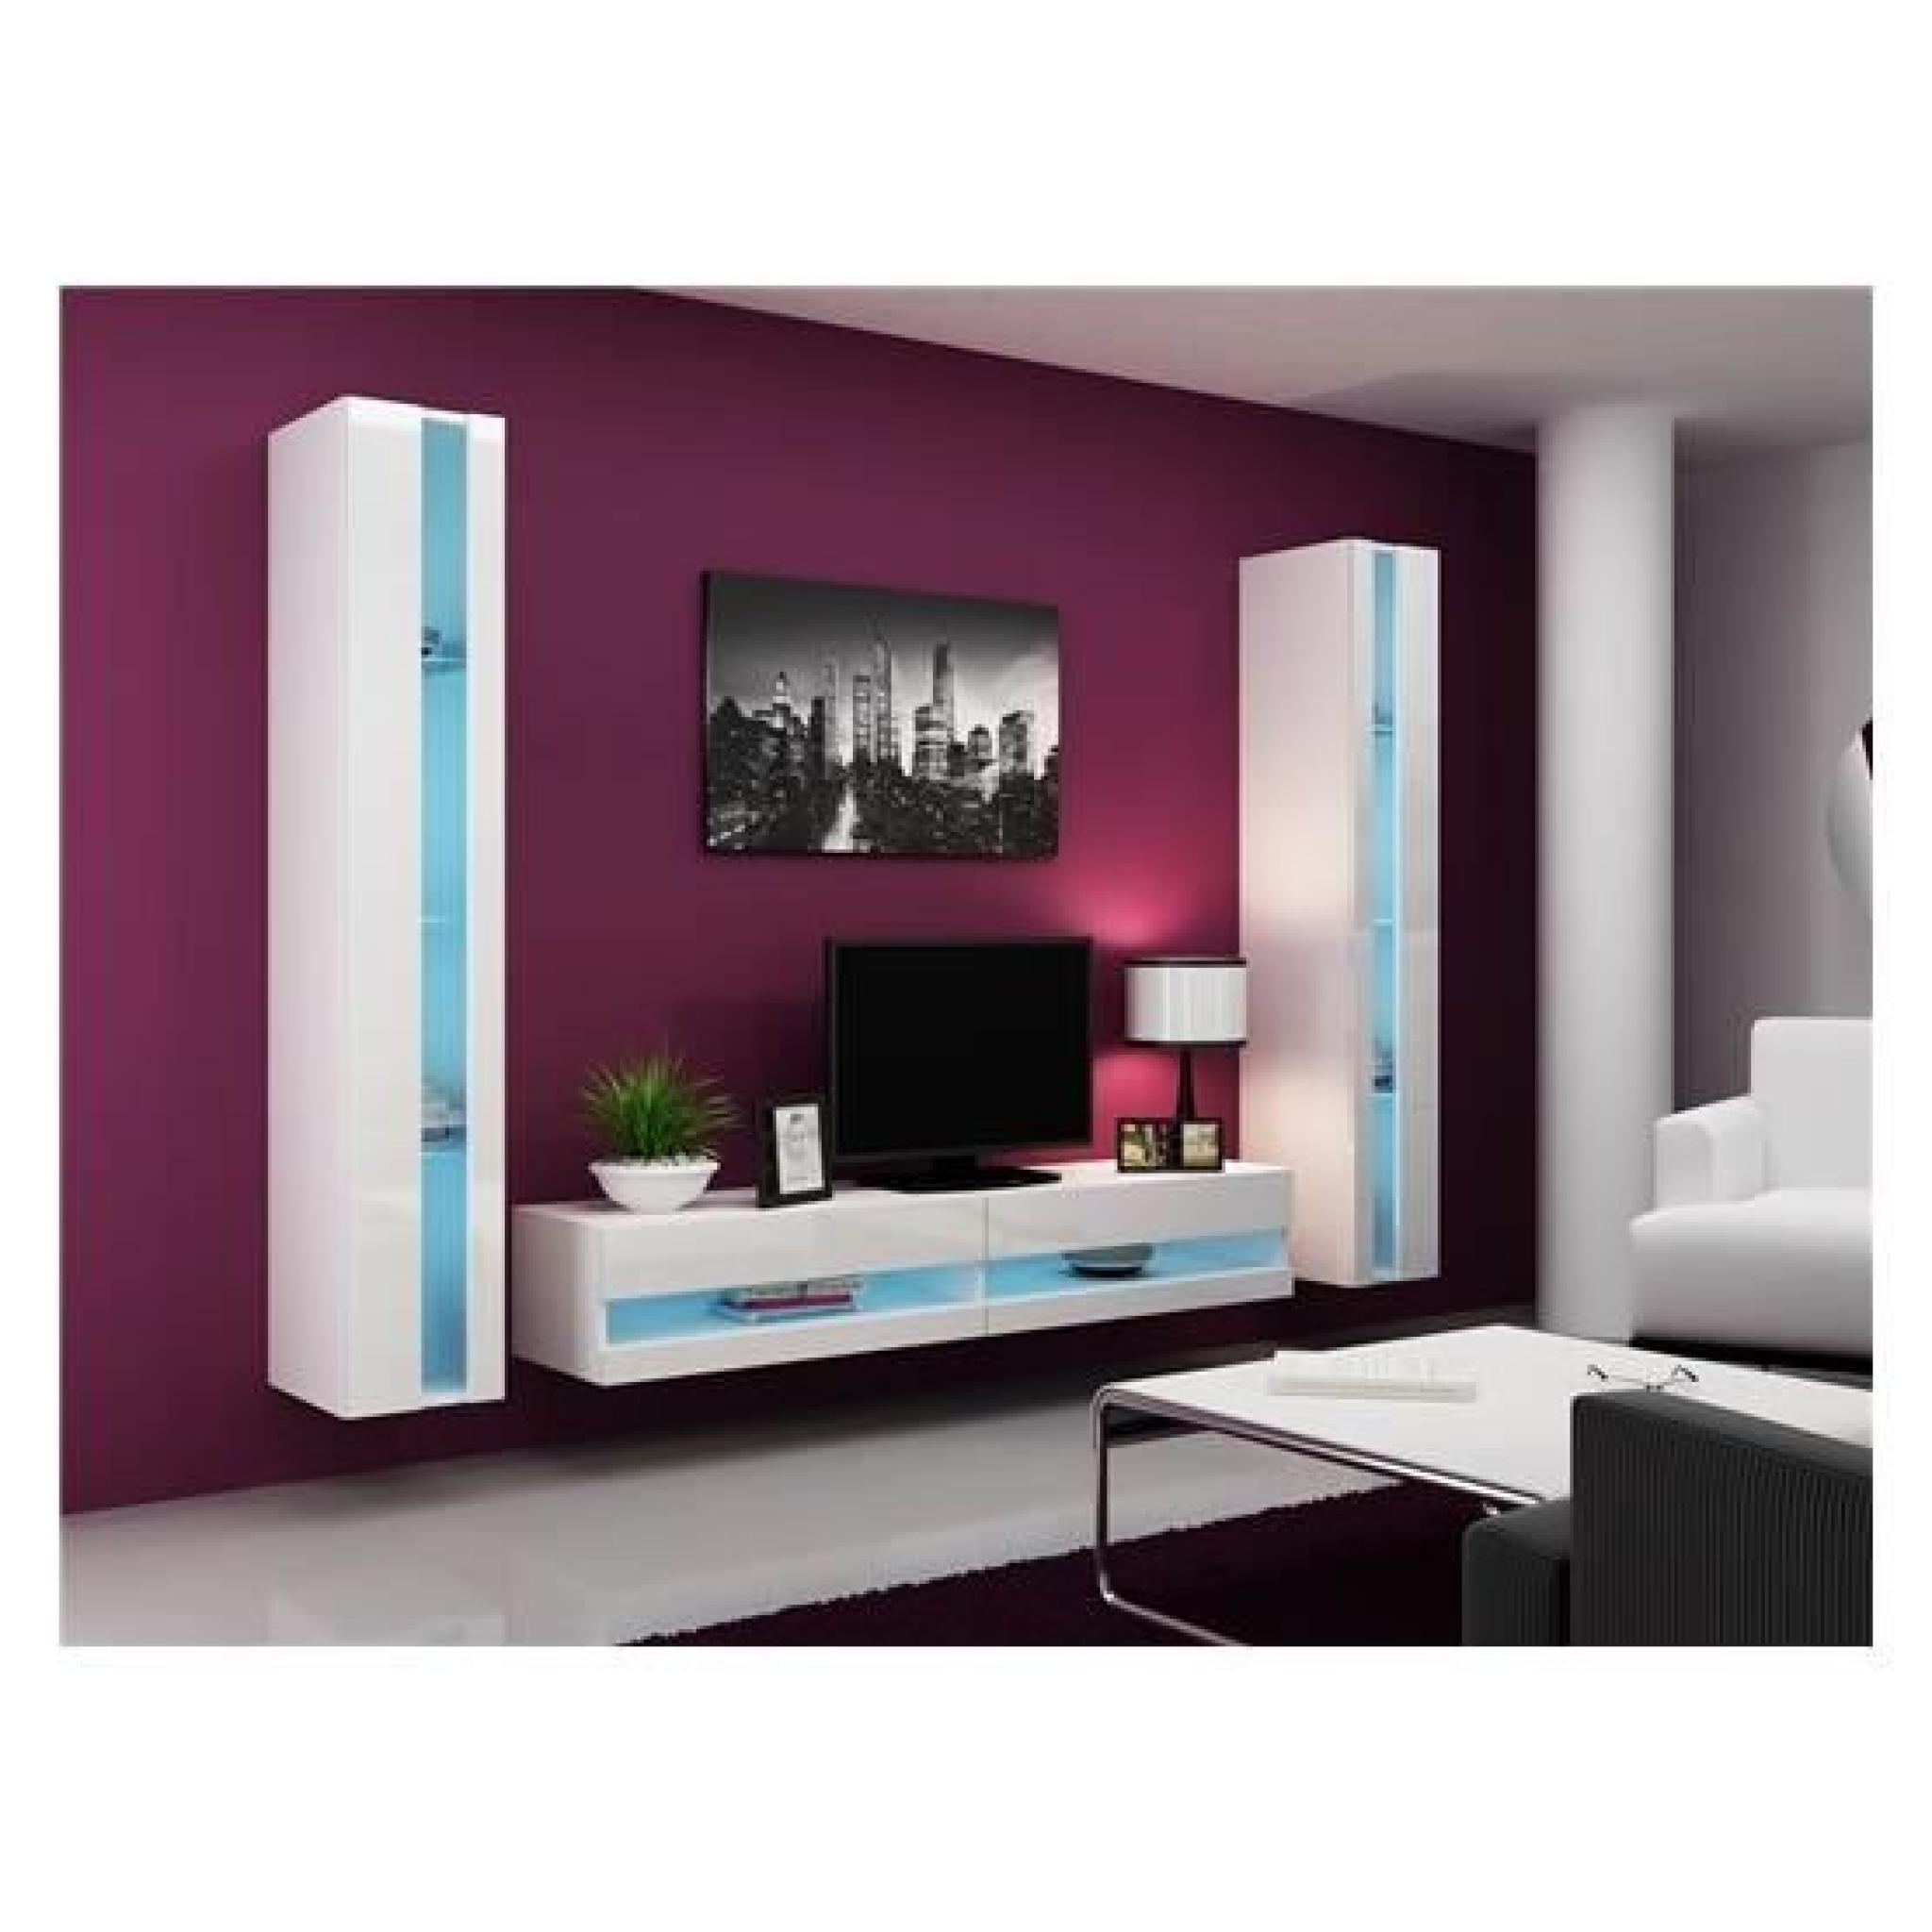 meuble tv a led maison et mobilier d 39 int rieur. Black Bedroom Furniture Sets. Home Design Ideas